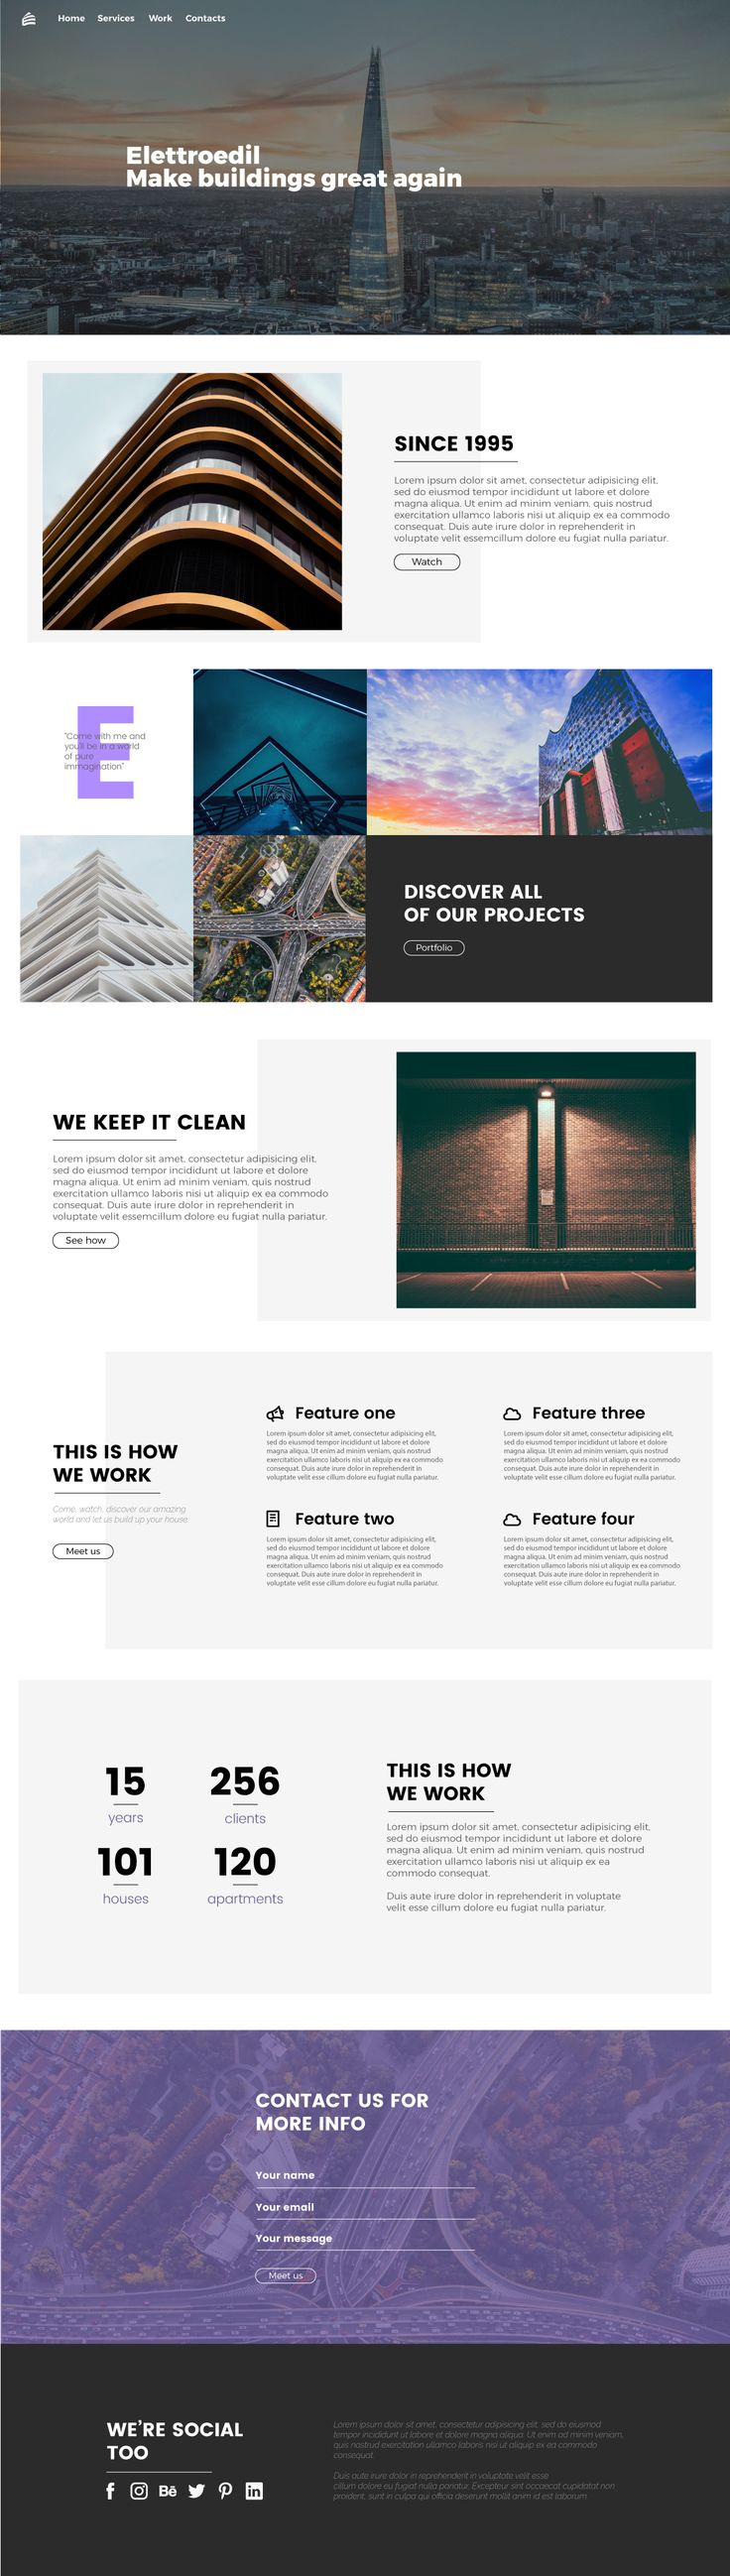 4th Day. This is my 4th layout for the weekly challenge. Inspired by Alexey Maslov on behance.  Hope you enjoy it. We're almost done.  #design #minimal #clear #web #site #template #awwwards #landingpage